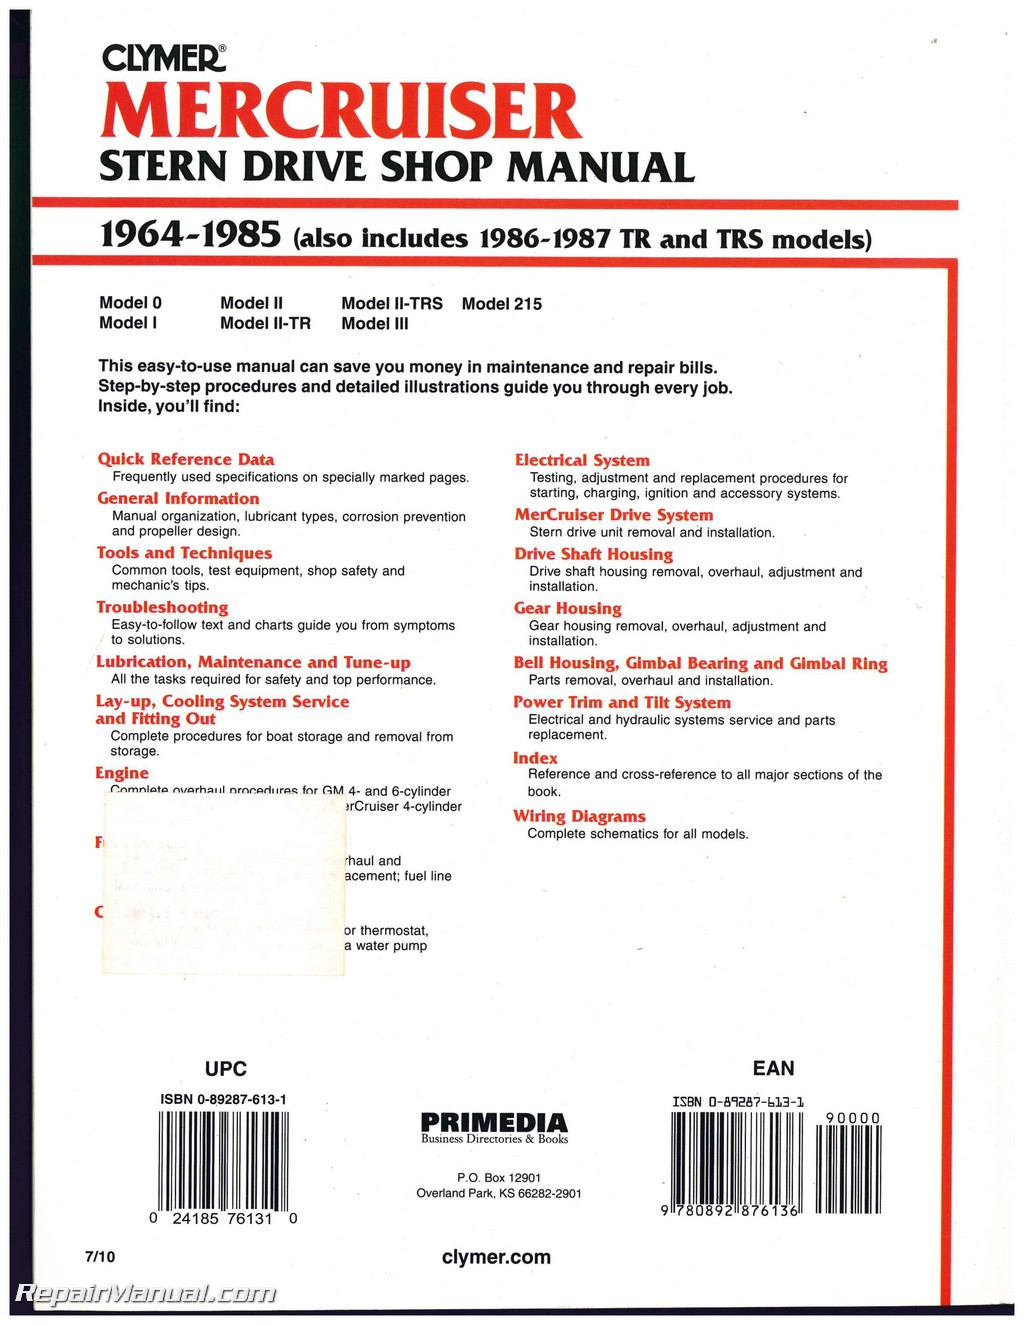 mercruiser stern drive boat engine shop manual 1964 1987 rh repairmanual com mercruiser 470 service manual mercruiser 470 repair manual pdf